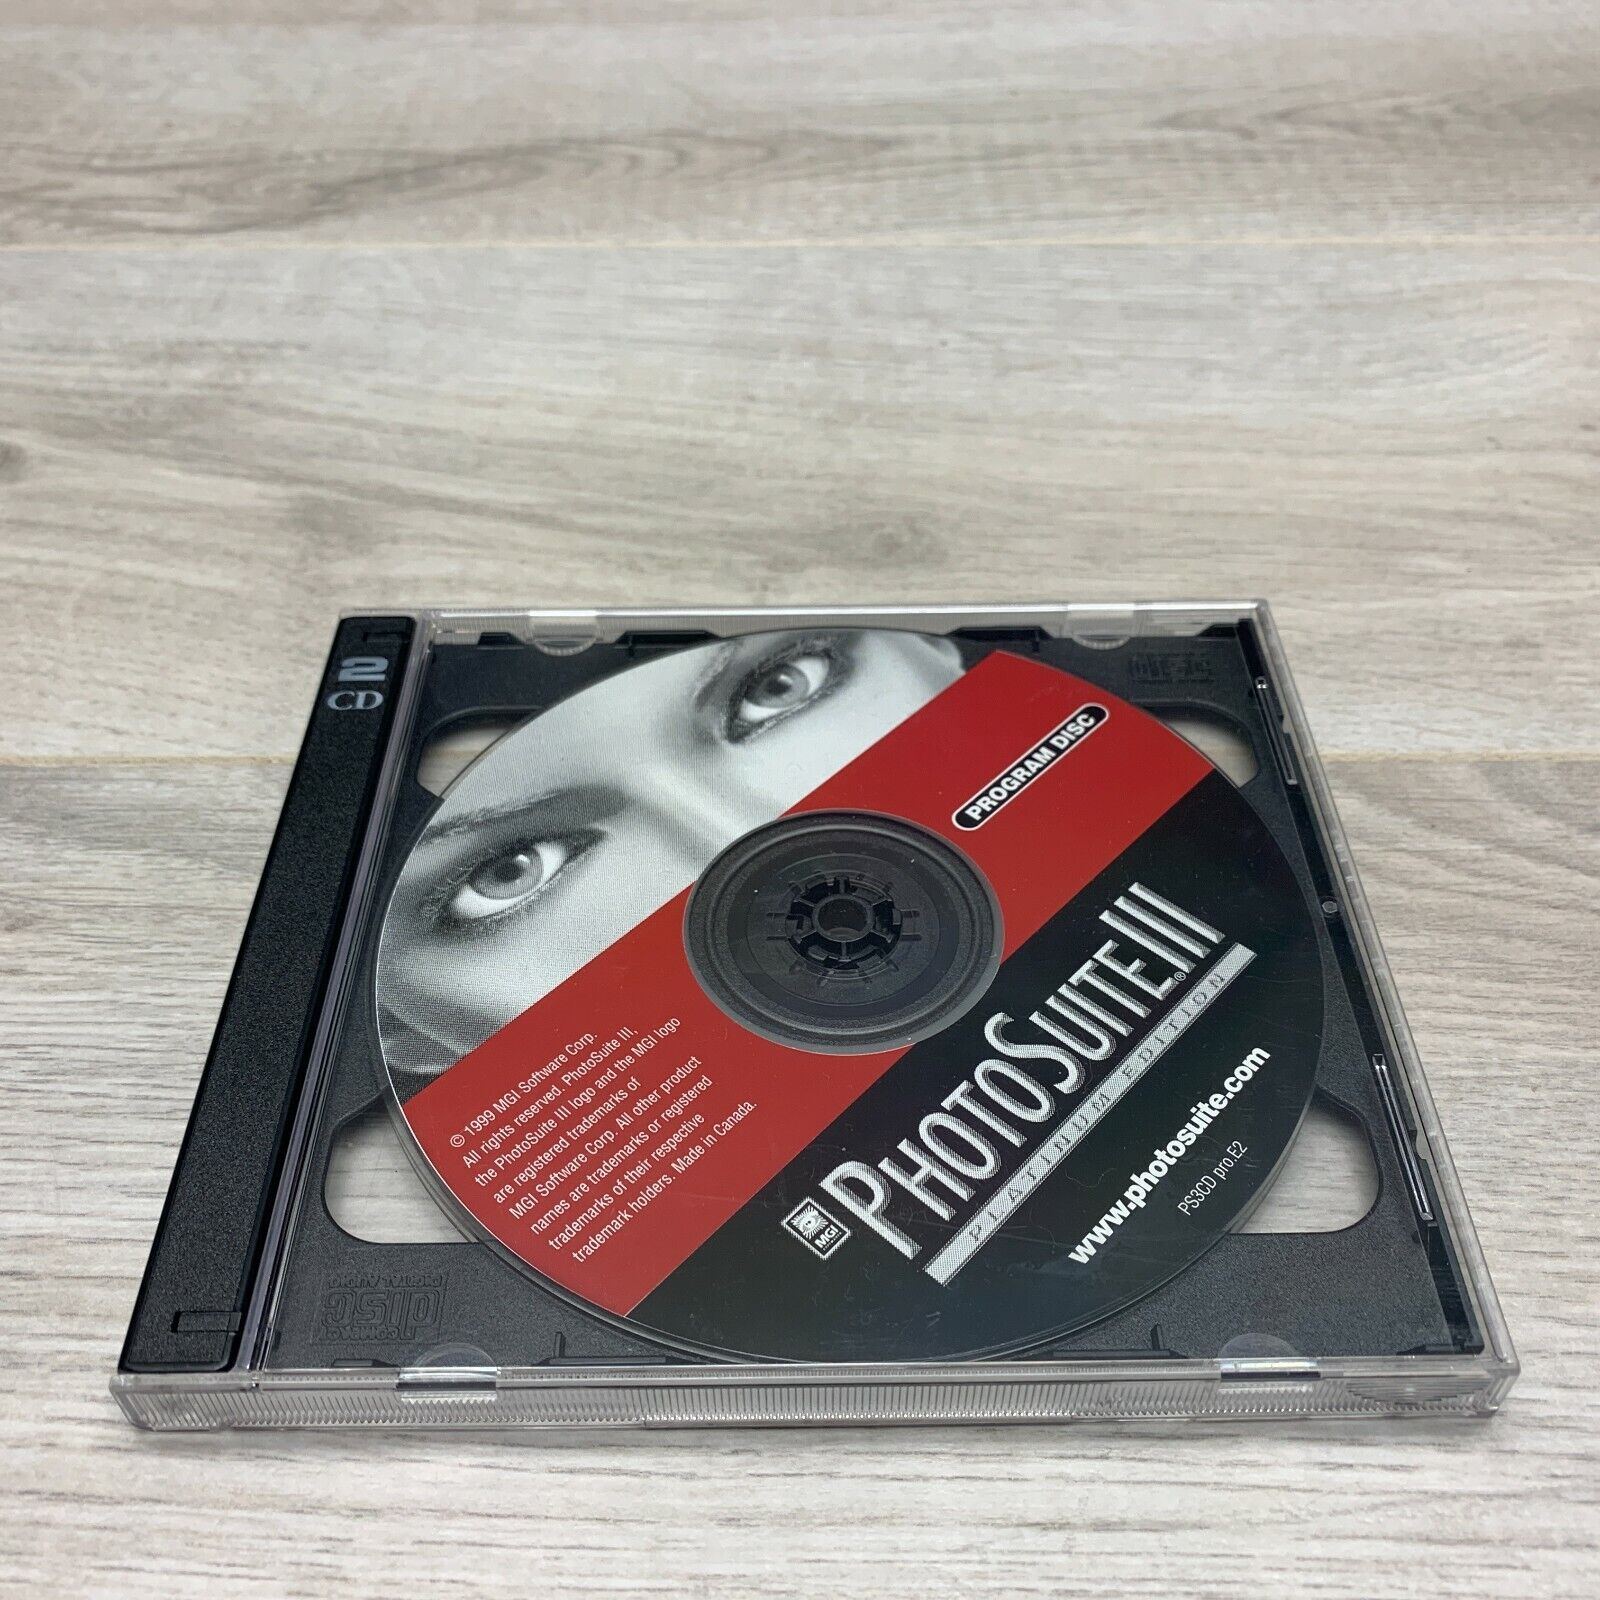 PhotoSuite III Platinum Photography Image Edit Software Windows 95/98/NT